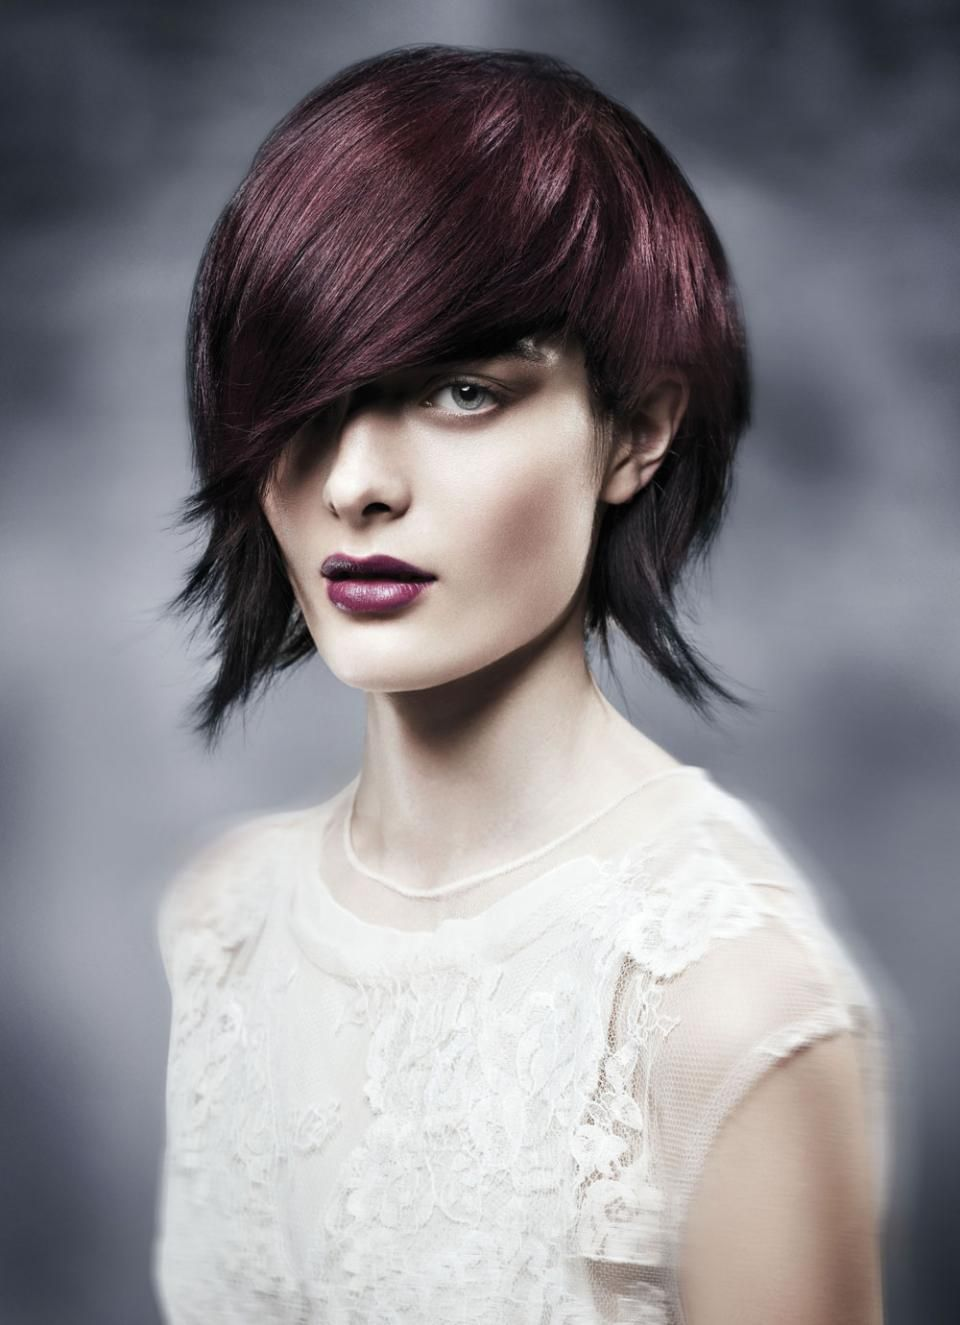 Avedaus neo gothic collection full spectrum color inspiration